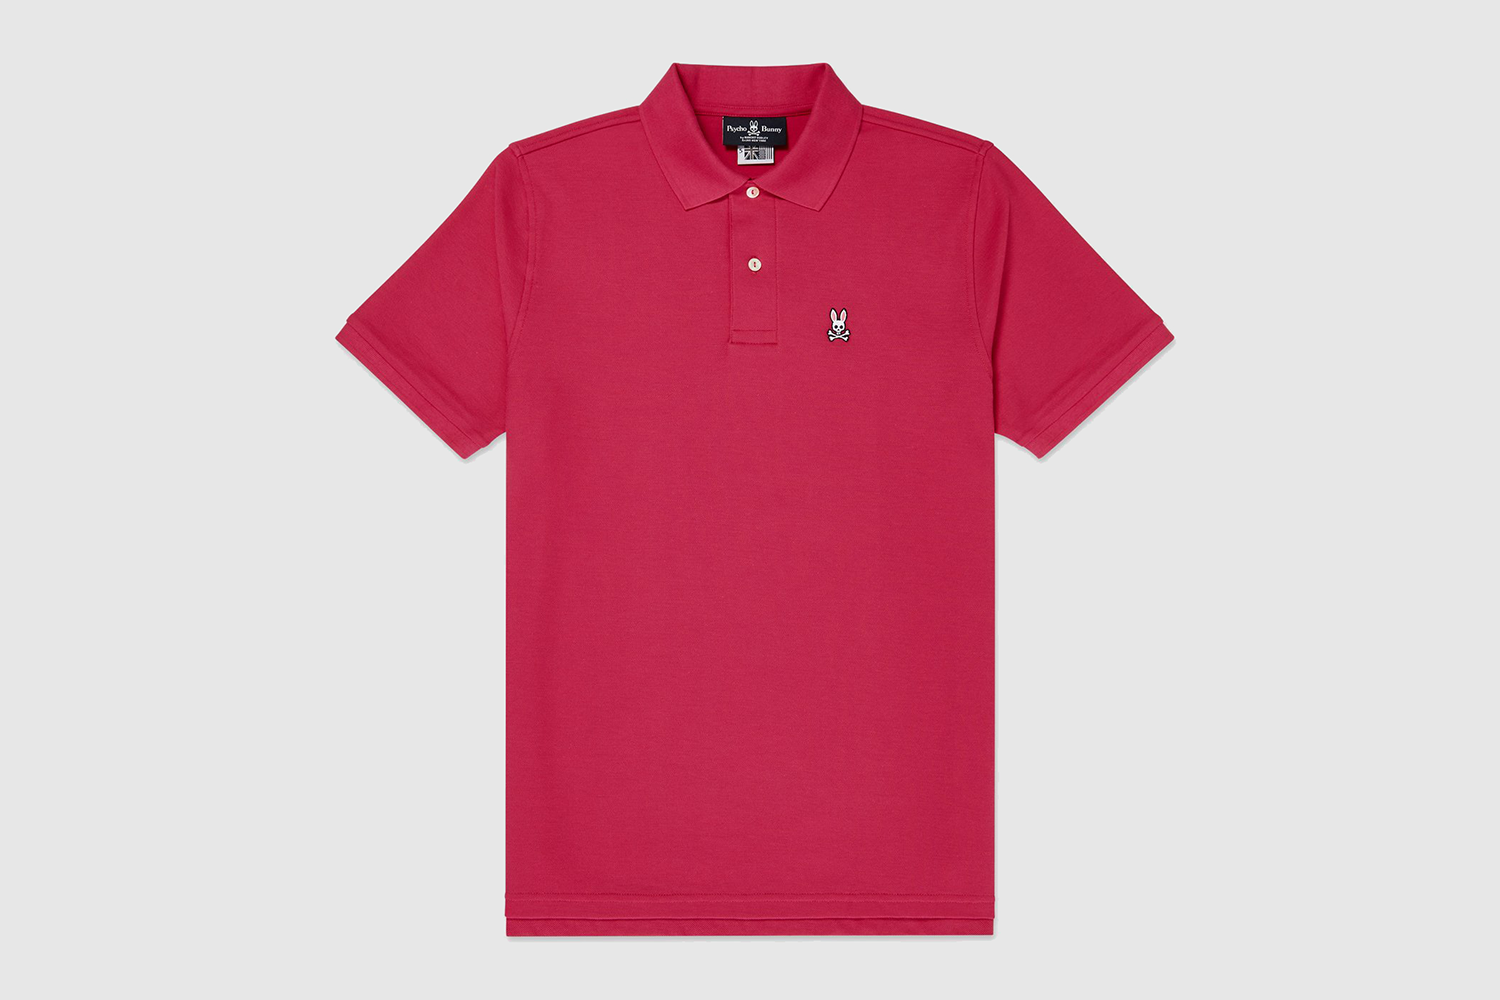 c253289d Every Polo Shirt Logo, Ranked - InsideHook